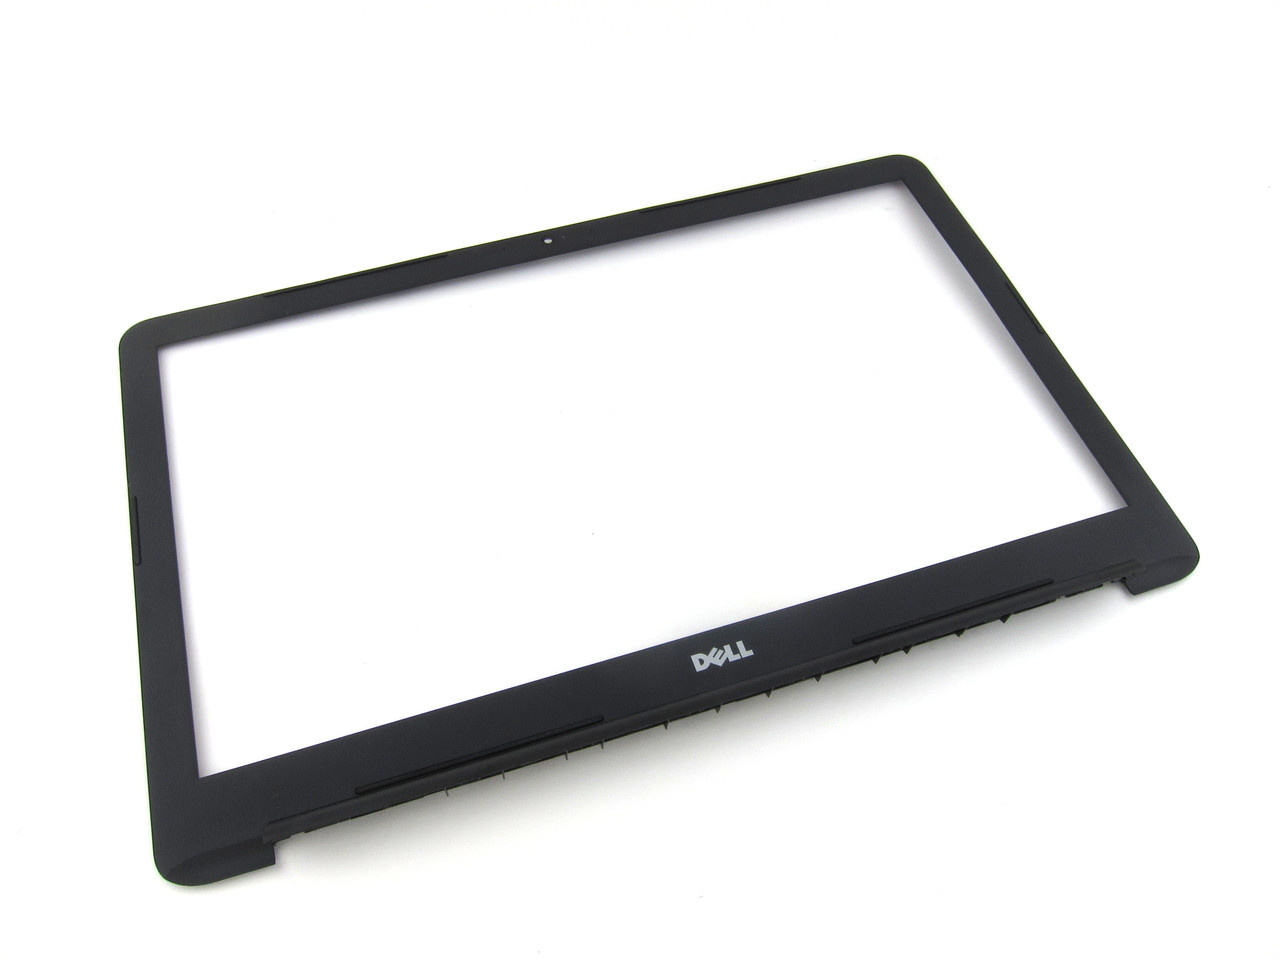 "Dell Inspiron 17 5767 / 5765 17.3"" Front LCD Trim Bezel - 7WCJX"